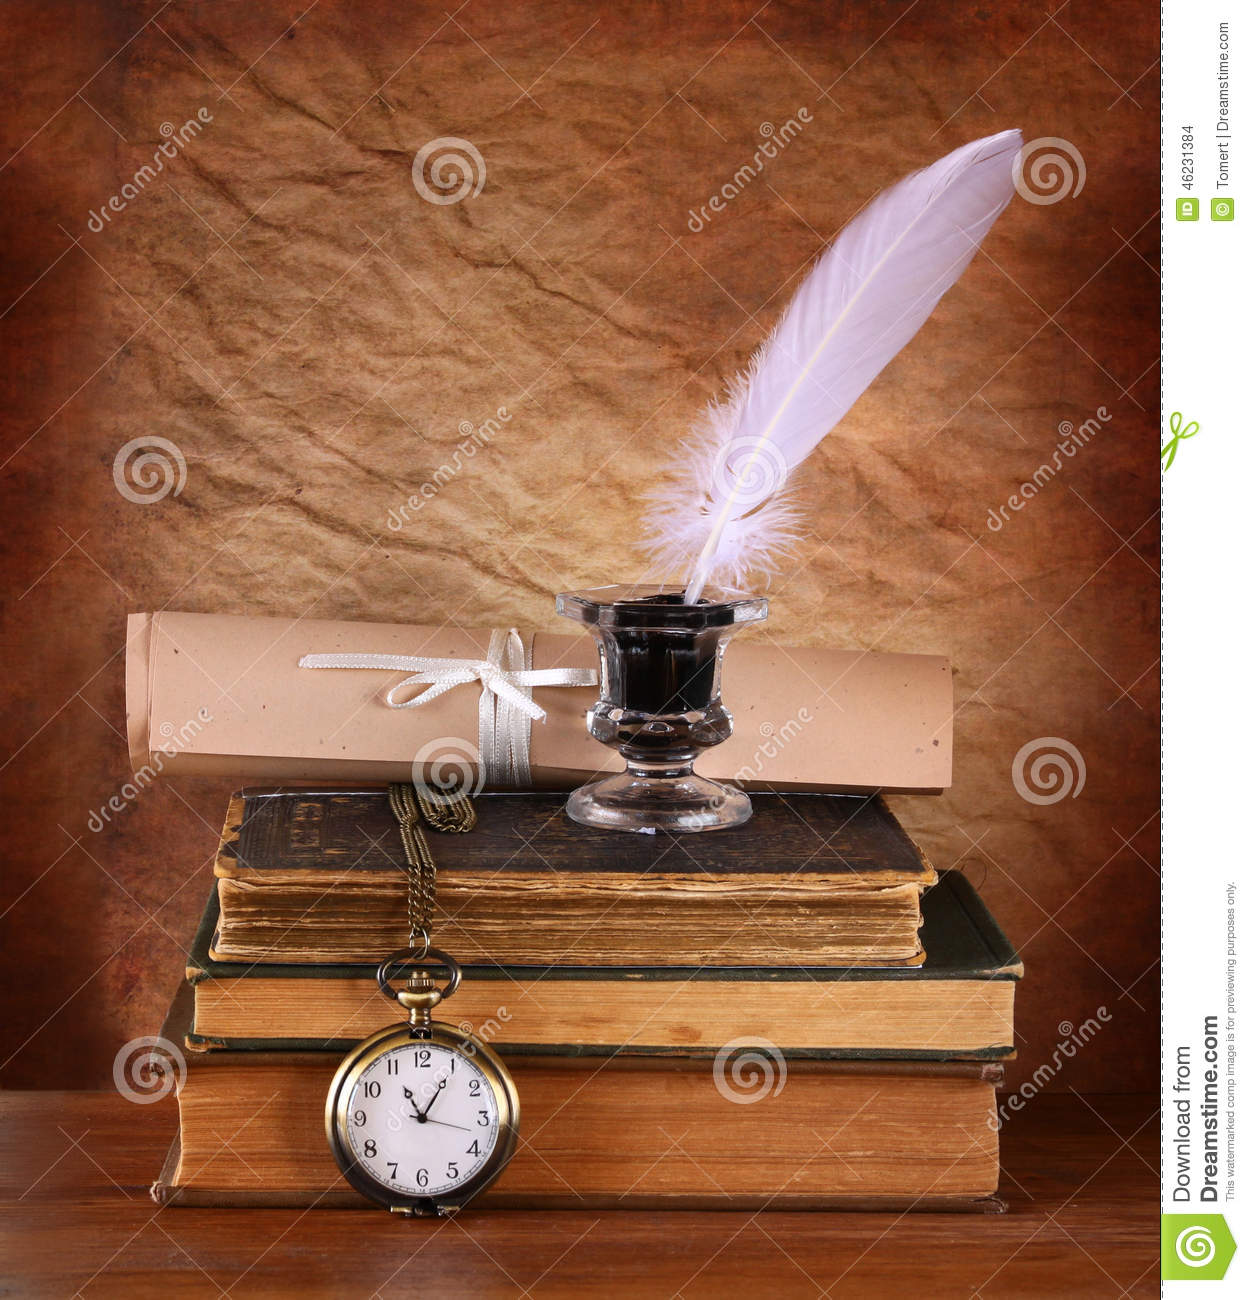 Ancient Soapstone Inkwell Stock Photo: Low Key Image Of White Feather, Inkwell And Ancient Books